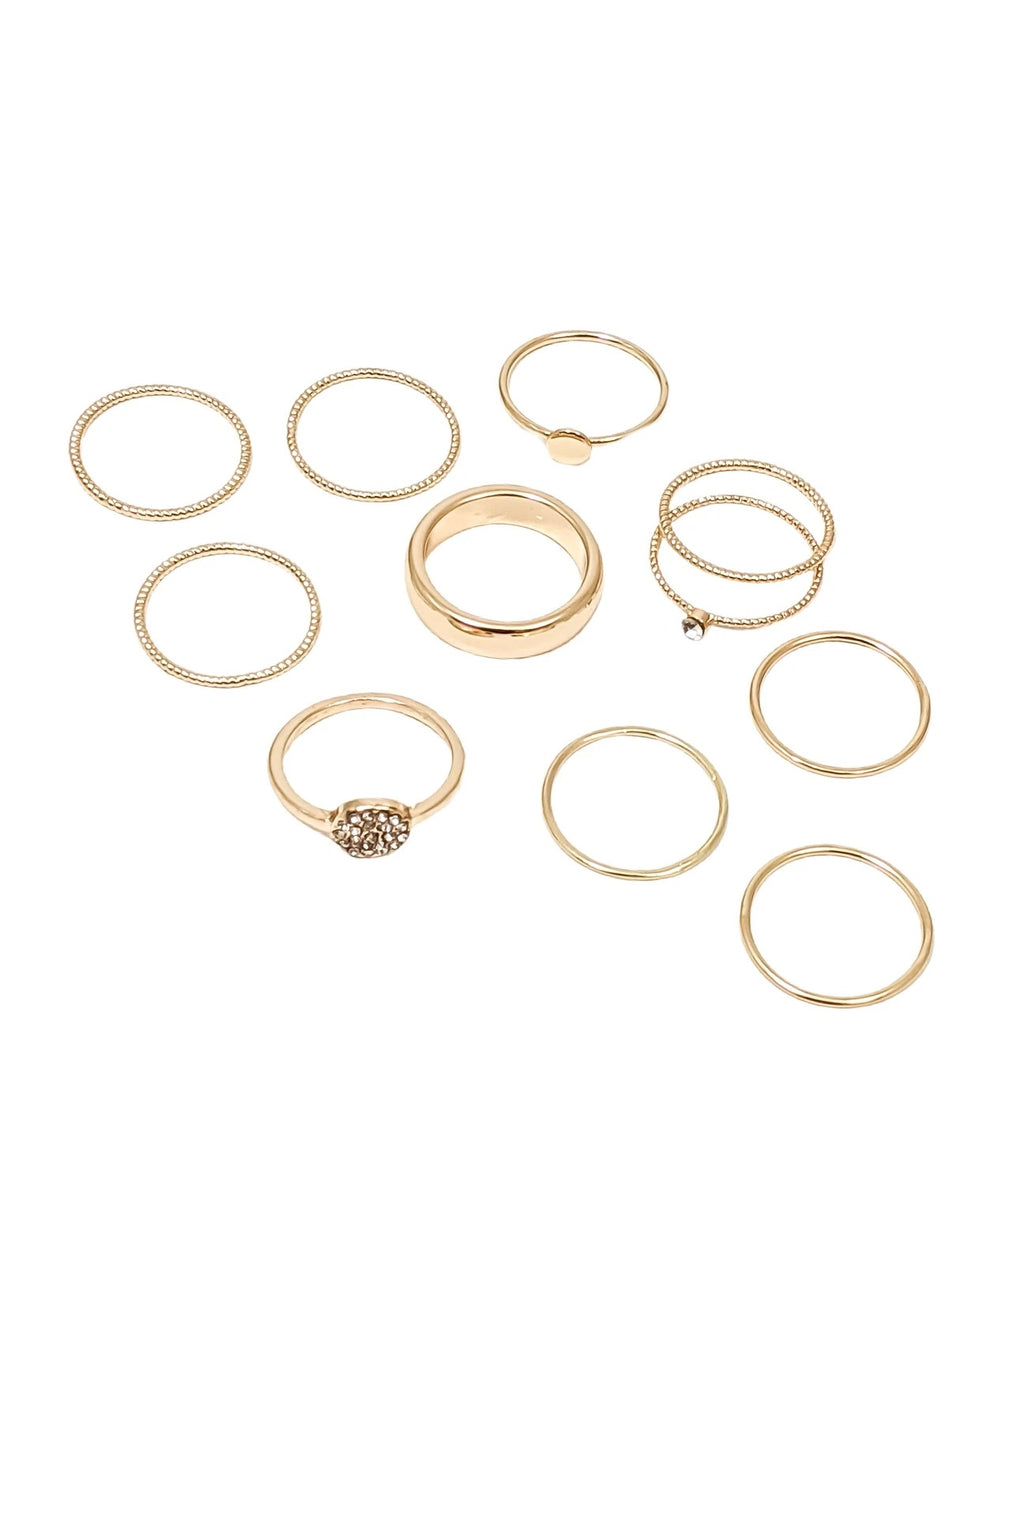 Kenzie Ring Set